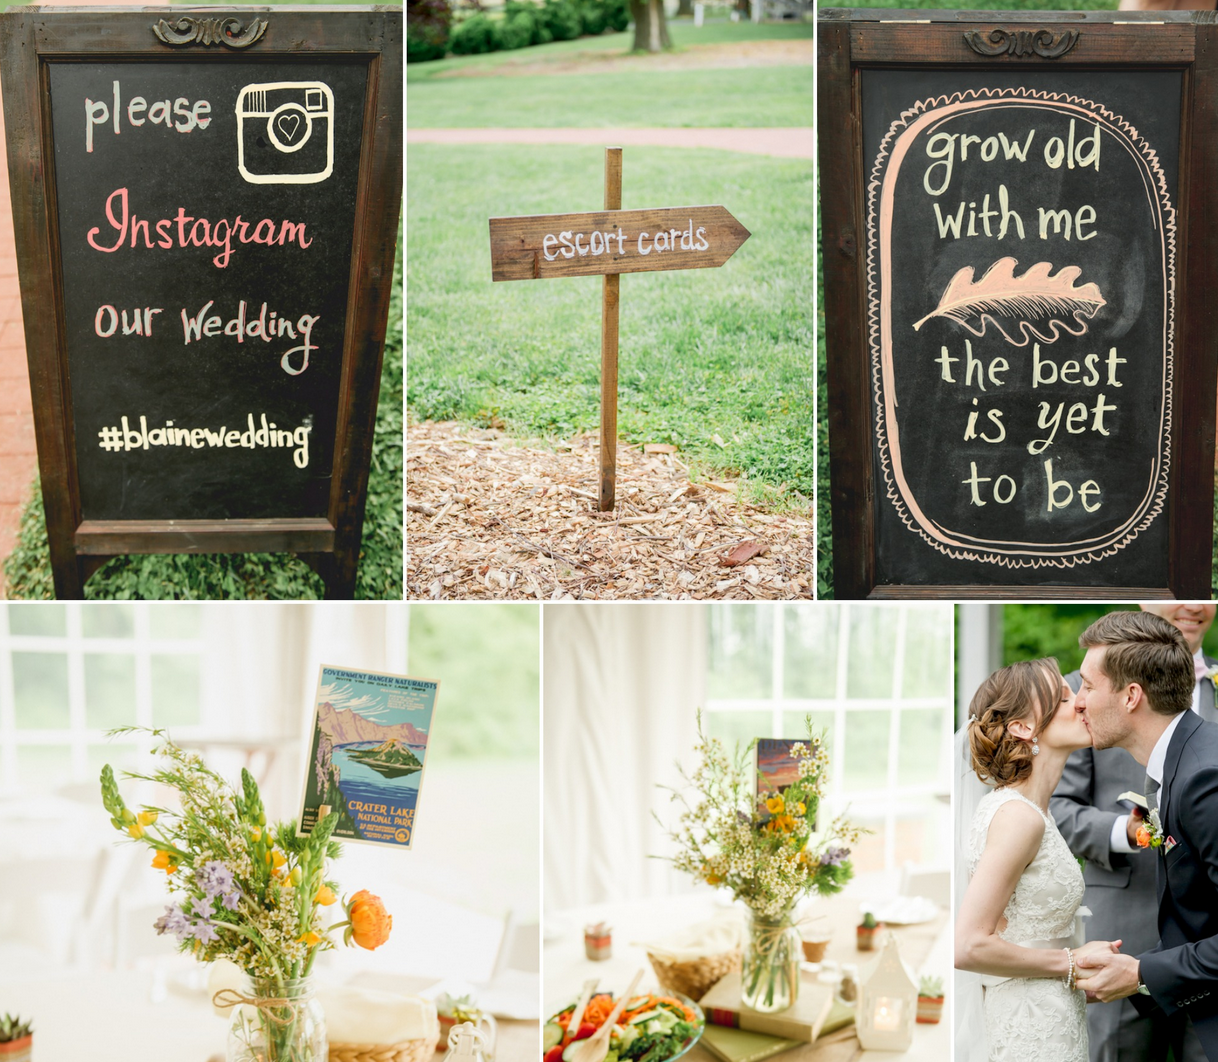 5 Reasons to Use a Wedding Hashtag - Rustic Wedding Chic